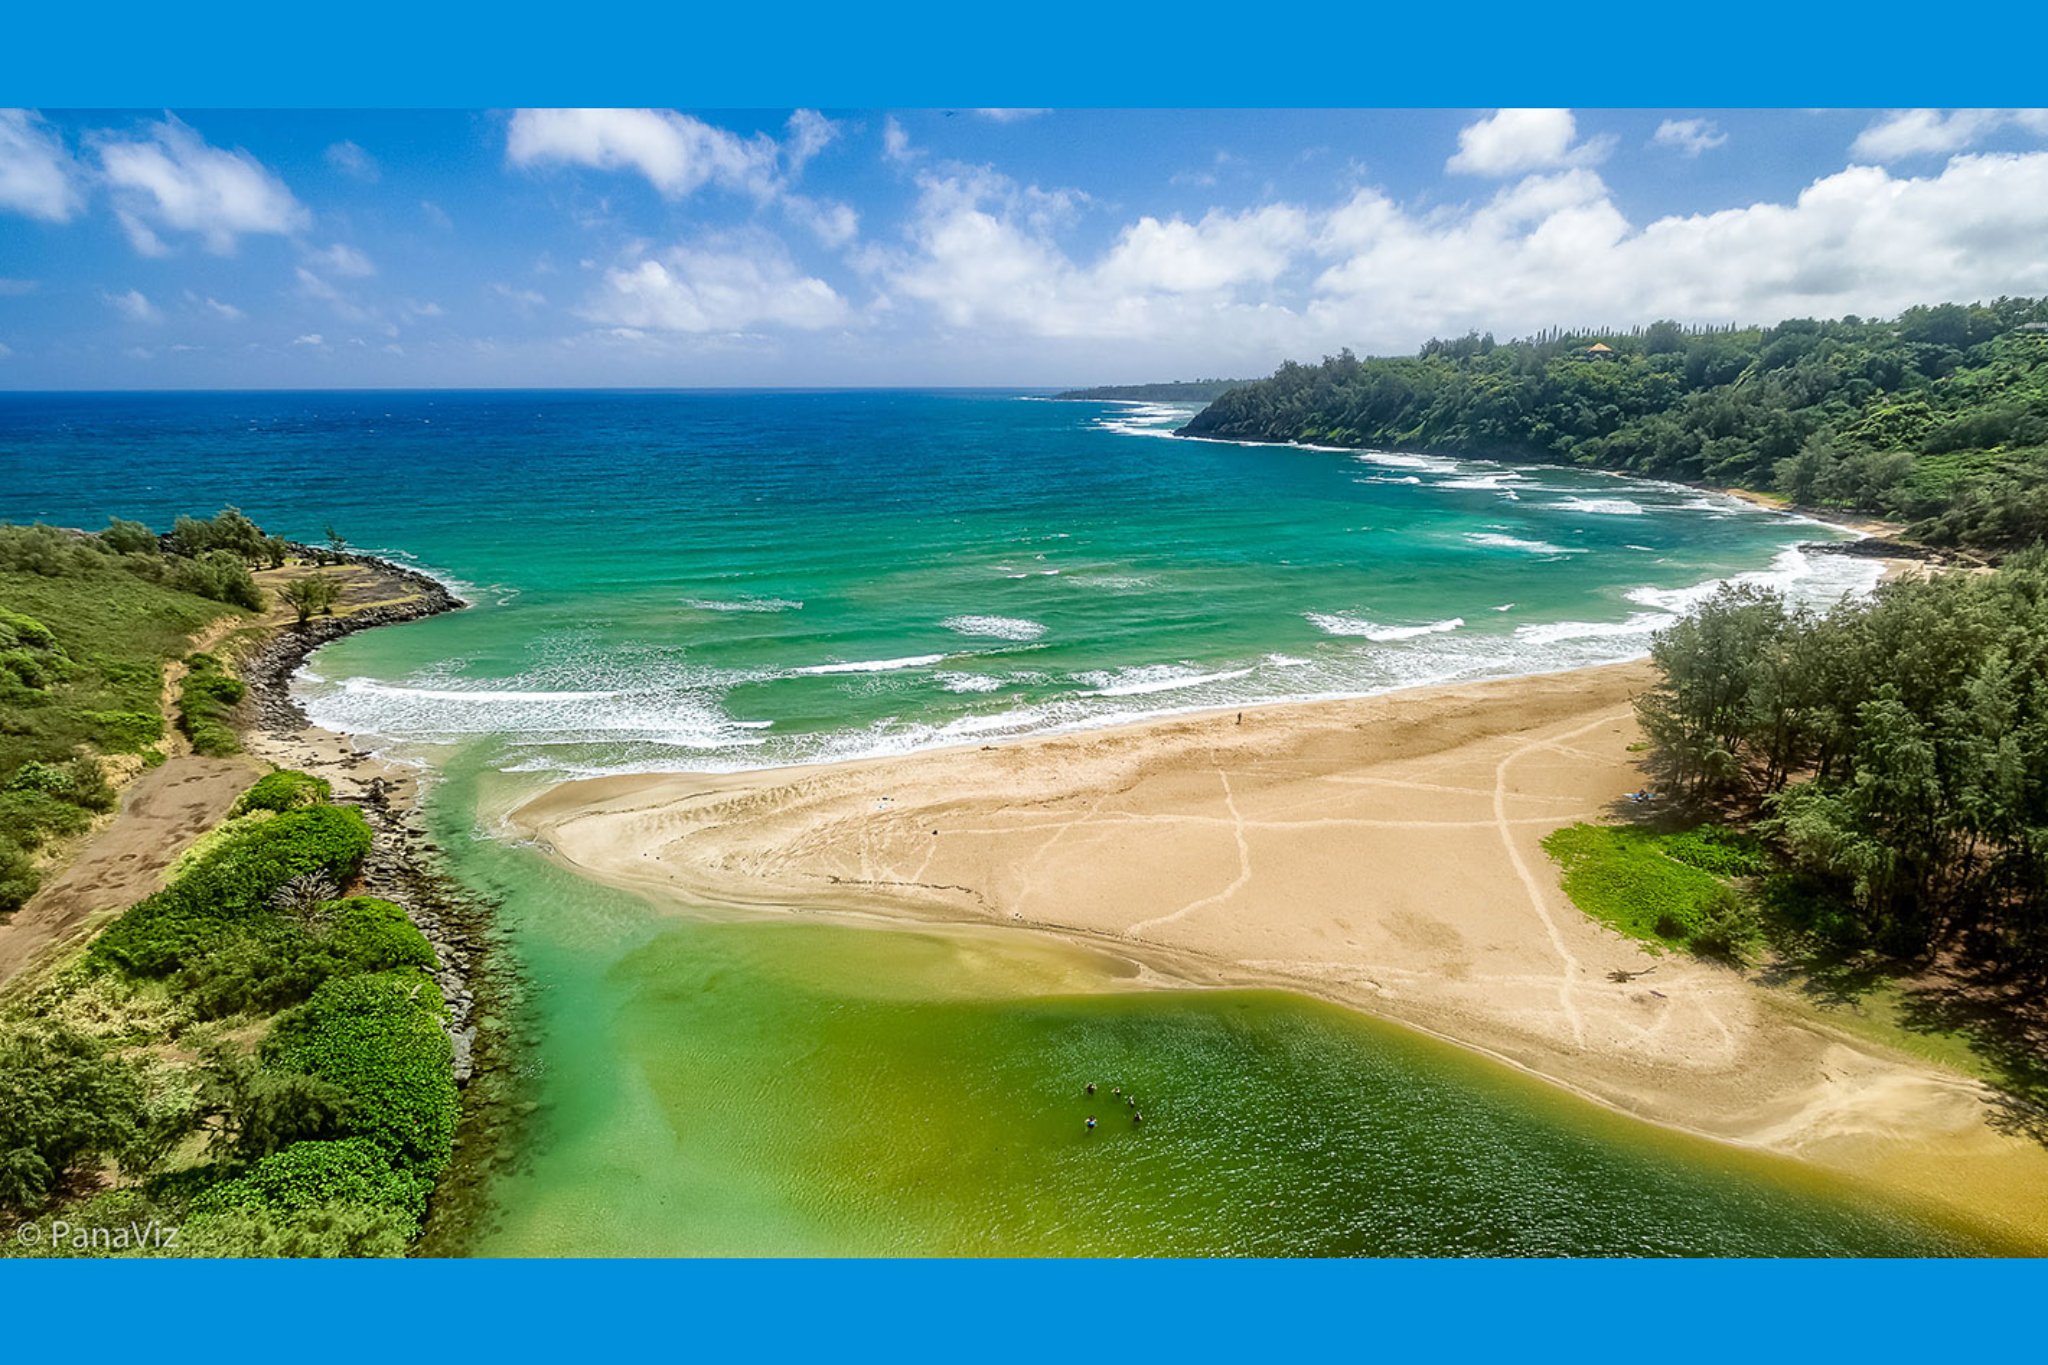 kauai-real-estate-photography-Sea_Song_-_10-04-2016_-_45